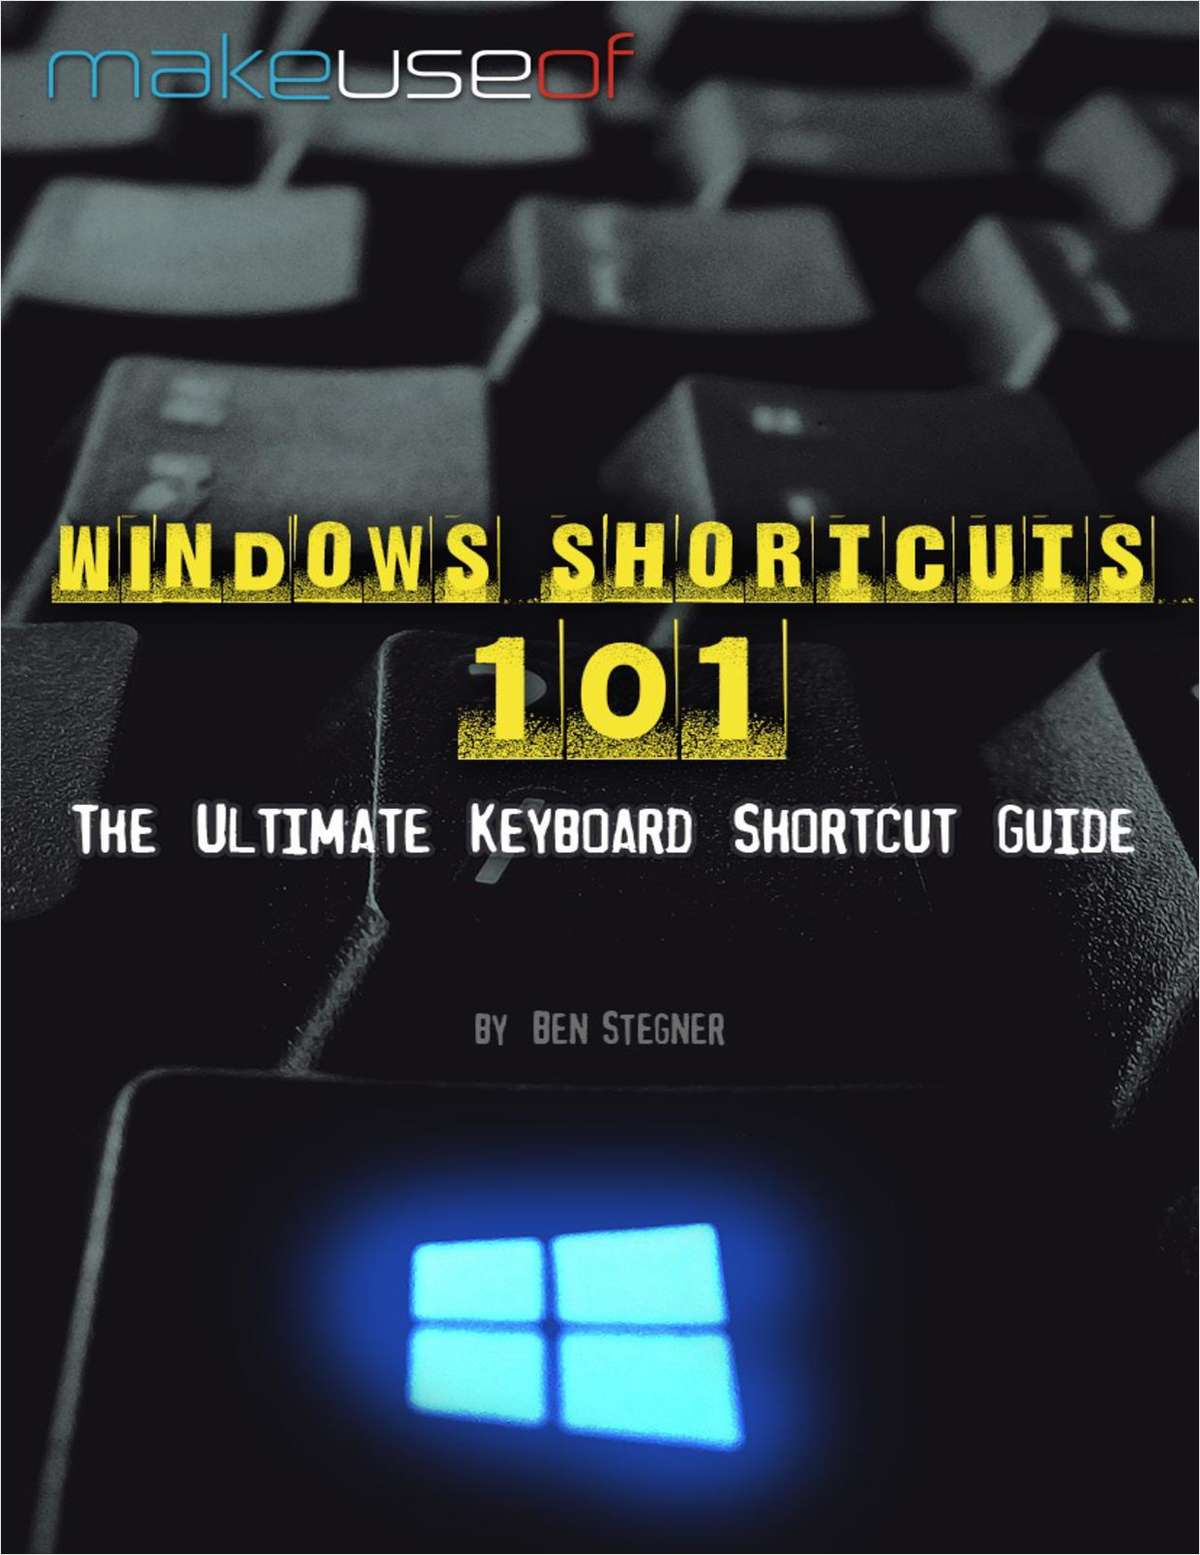 Windows Shortcuts 101: The Ultimate Keyboard Shortcut Guide